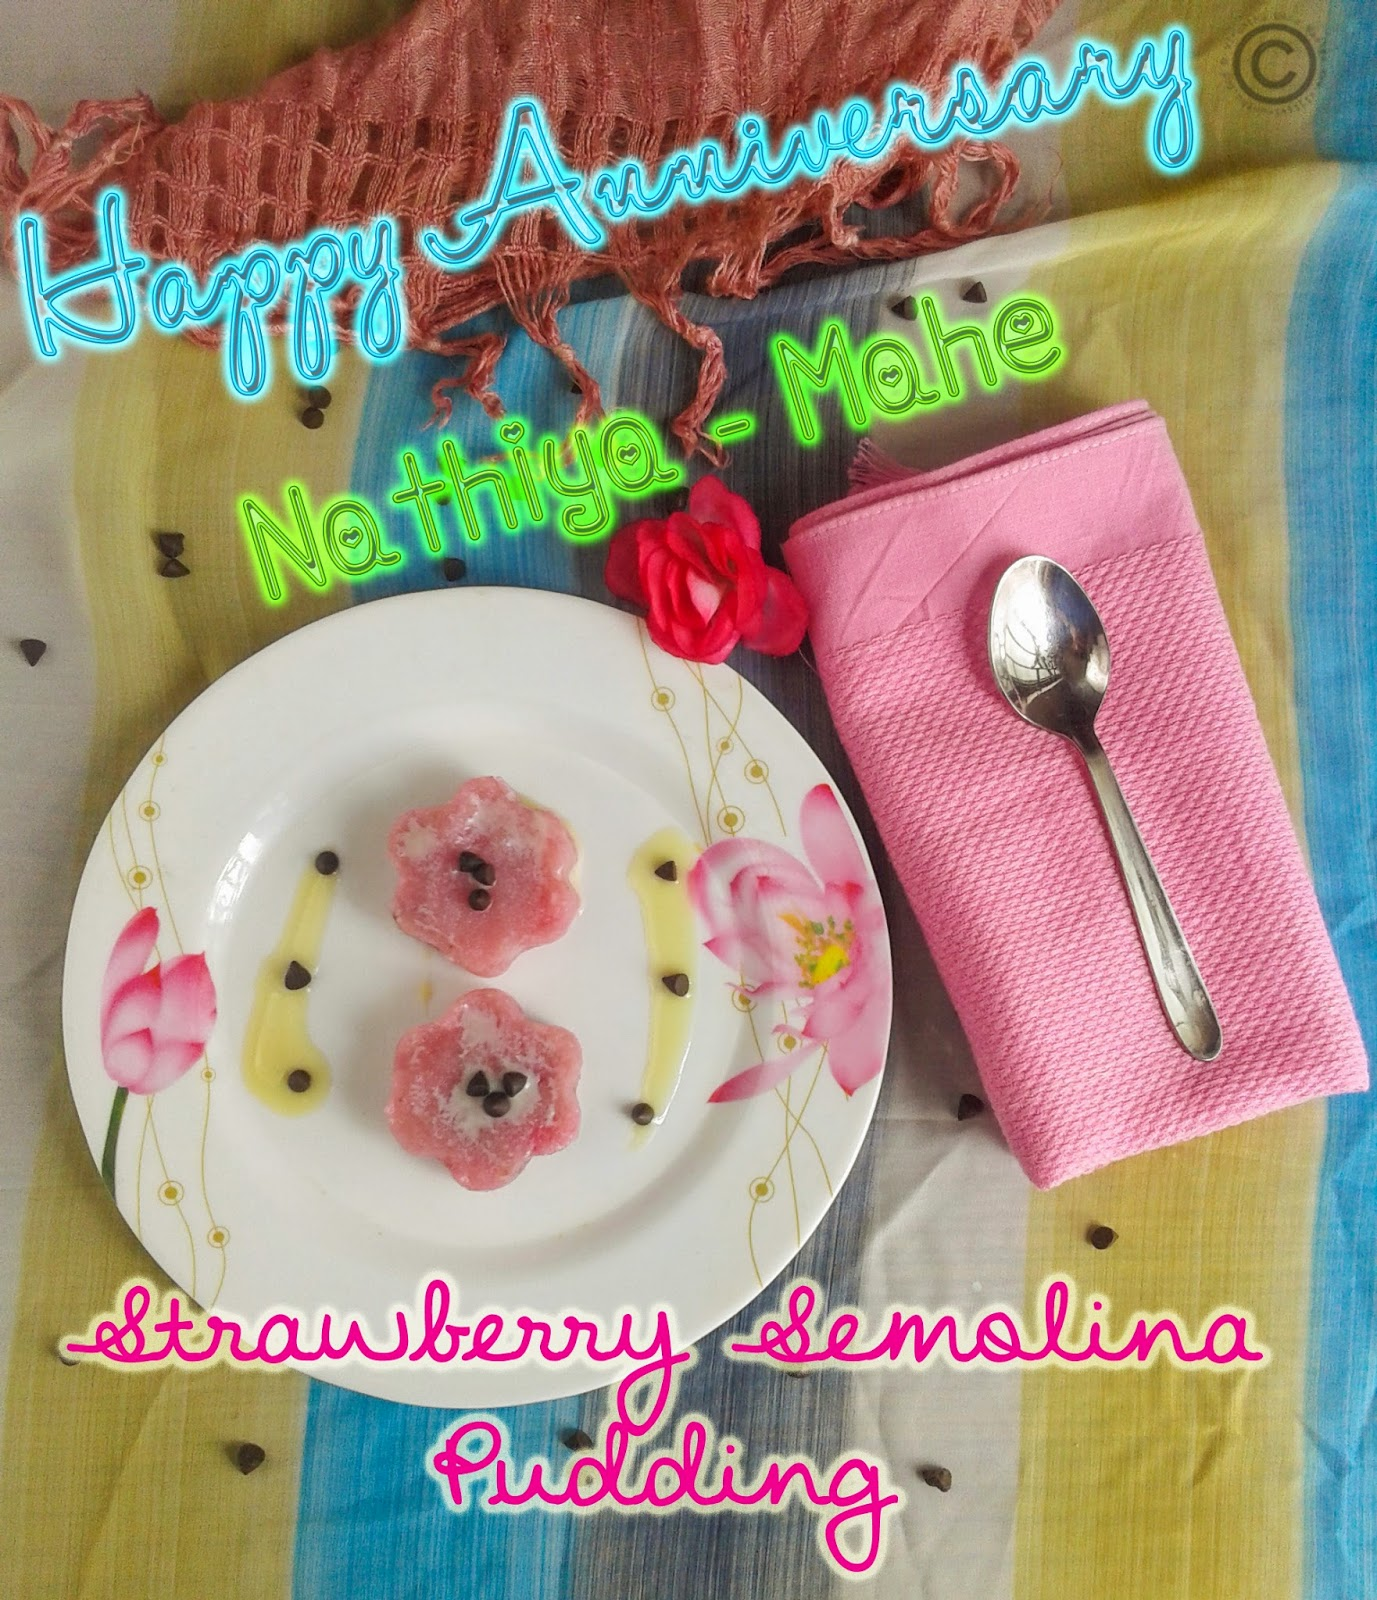 strawberry-semolina-pudding